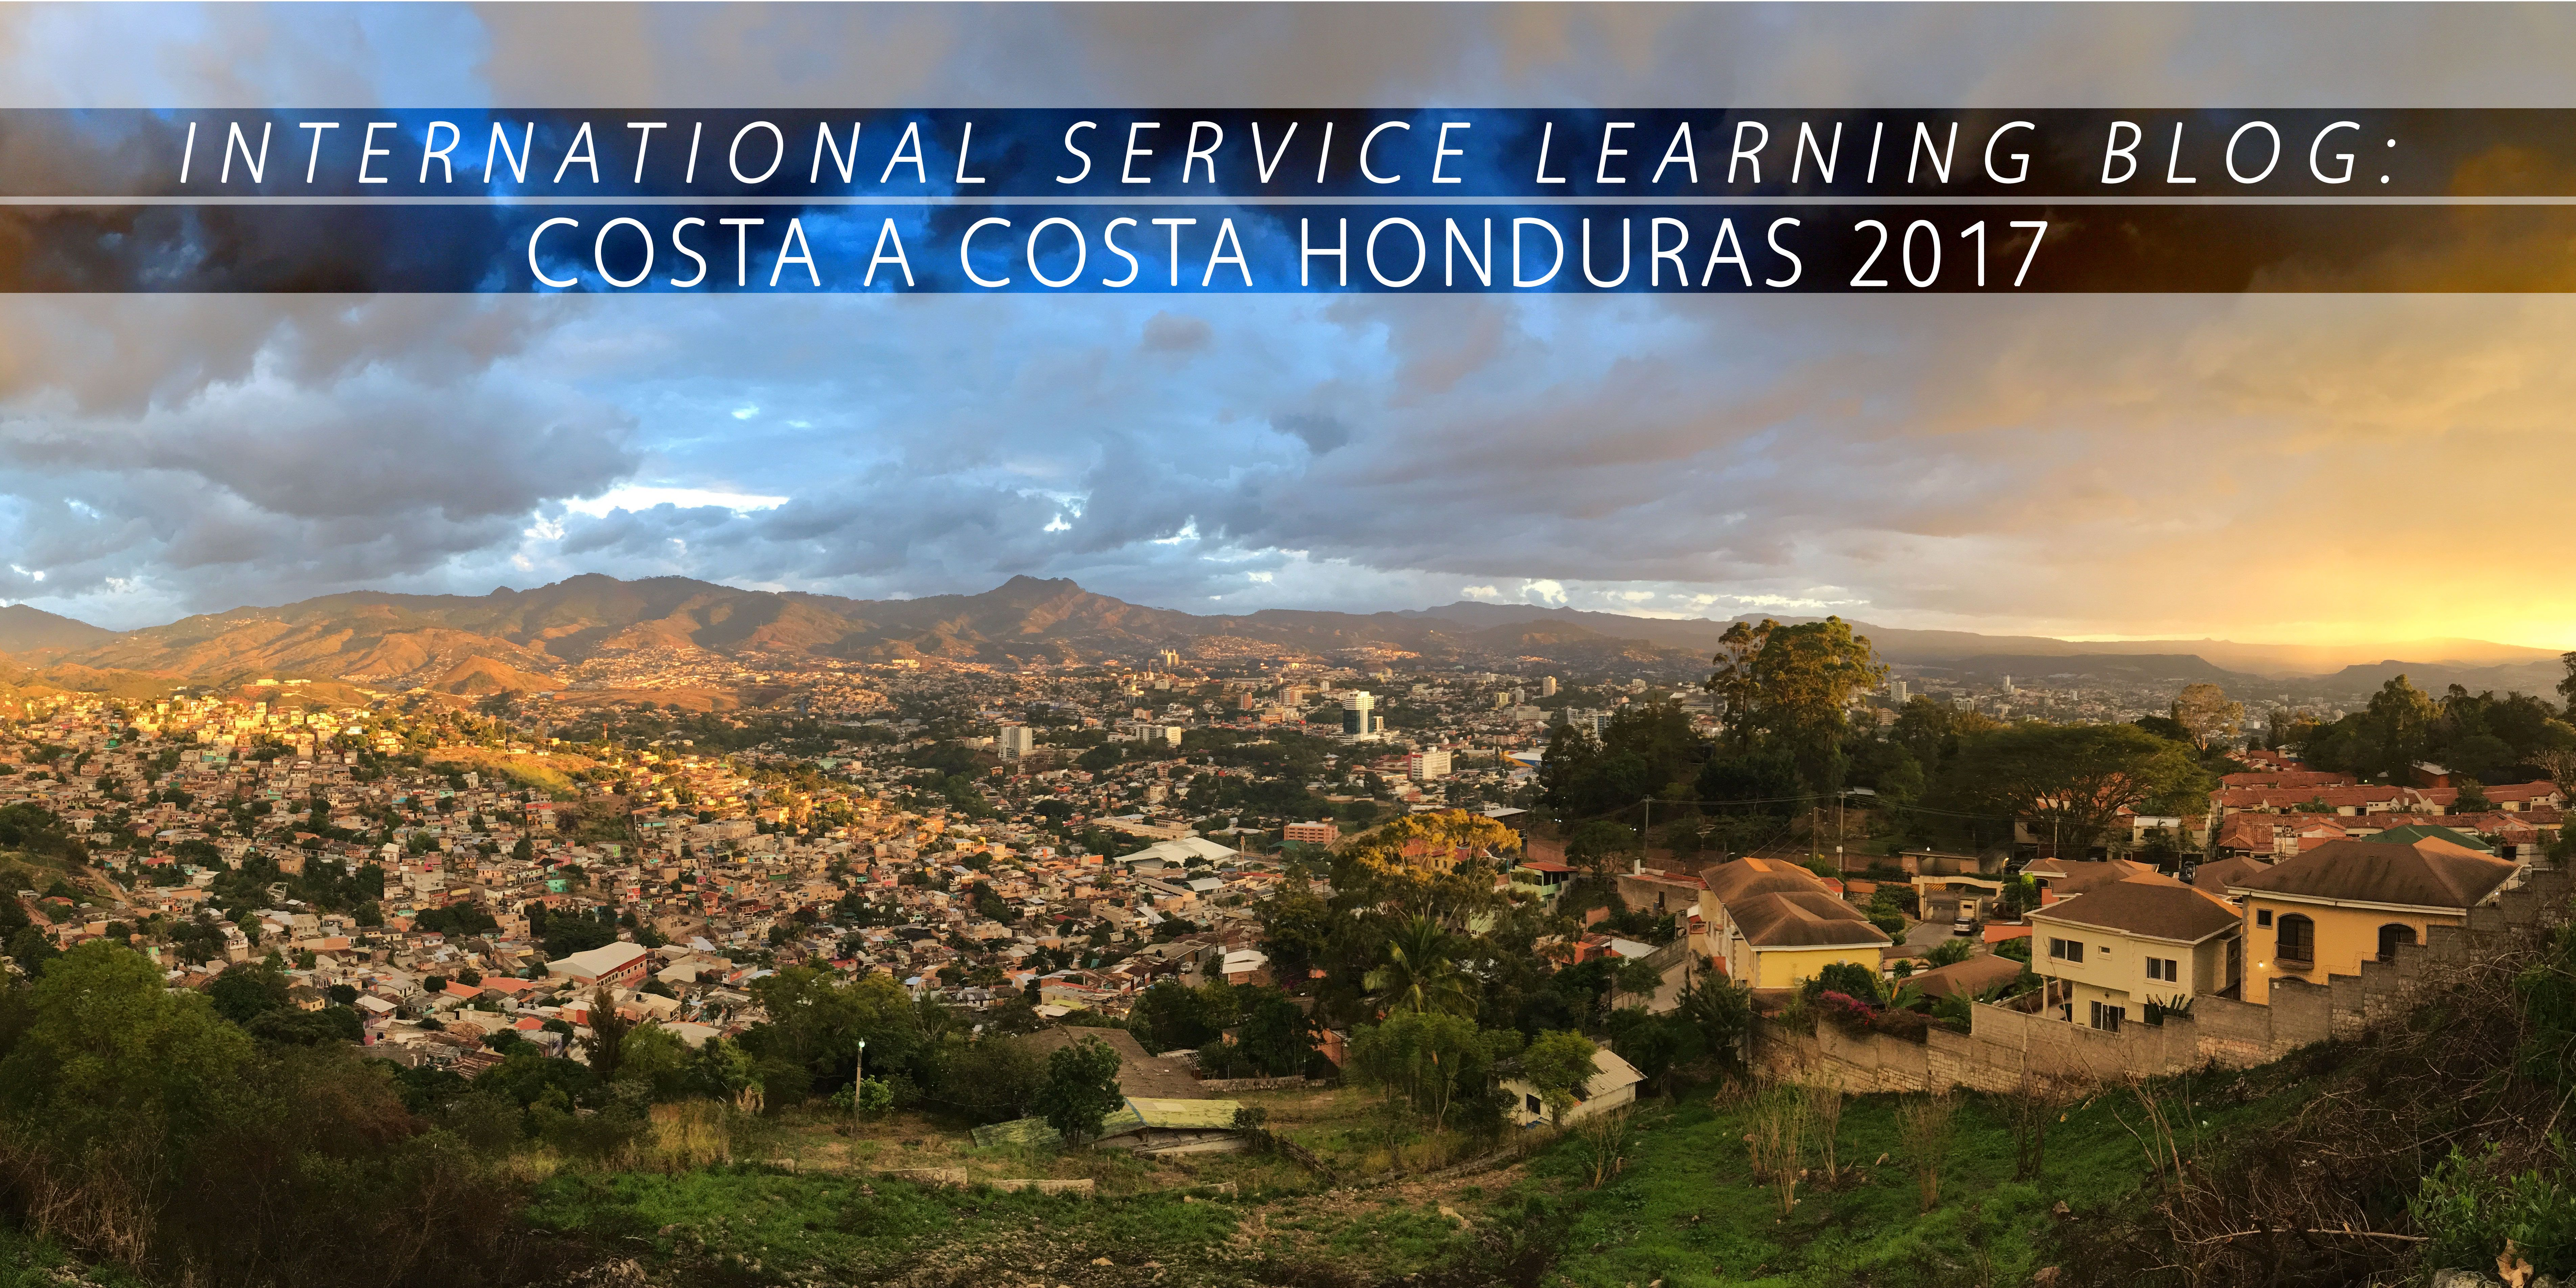 Did you enjoy learning about Costa a Costa from Sagen's snippets last week? Check out his closing comments on the experience, or find out what we're talking about on our new blog post: http://www.islonline.org/costa-a-costa-honduras-2017/ We also encourage you to learn more about these fantastic organizations at these websites: Costa a Costa: https://costaacosta.org/i/ Transfomemos Honduras: http://transformemoshonduras.com/org/ Association for a More Just Society: https://www.ajs-us.org/